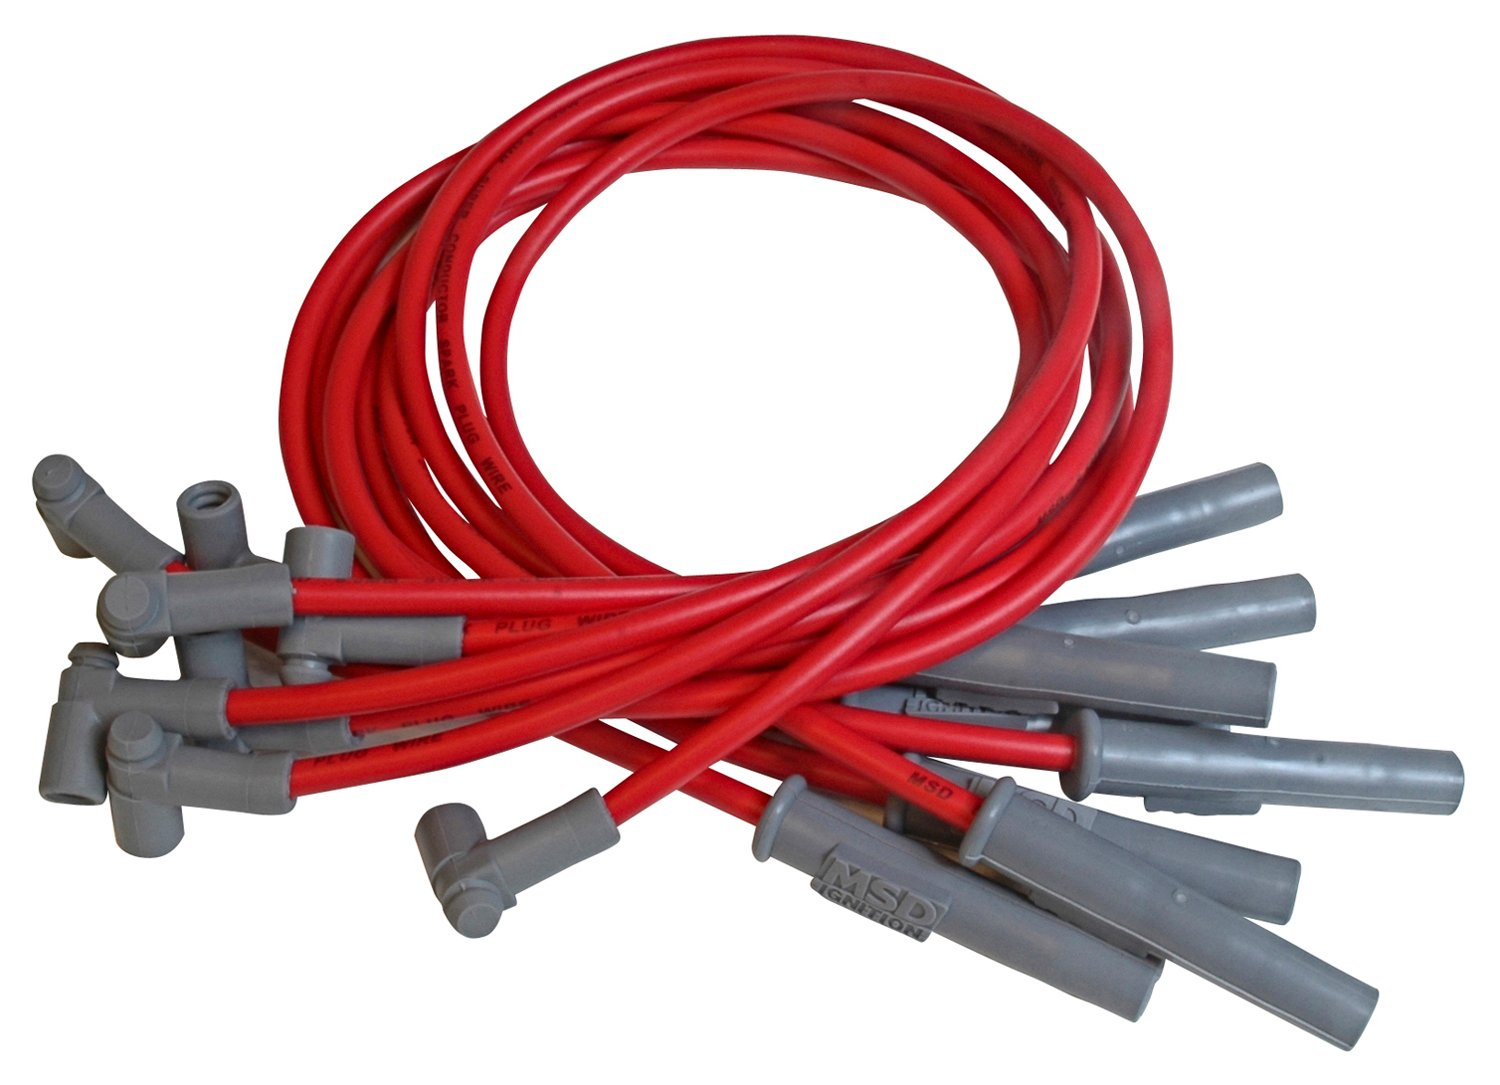 32749 - Super Conductor Spark Plug Wire Set, 318-360 HEI, for MSD Distributor Image